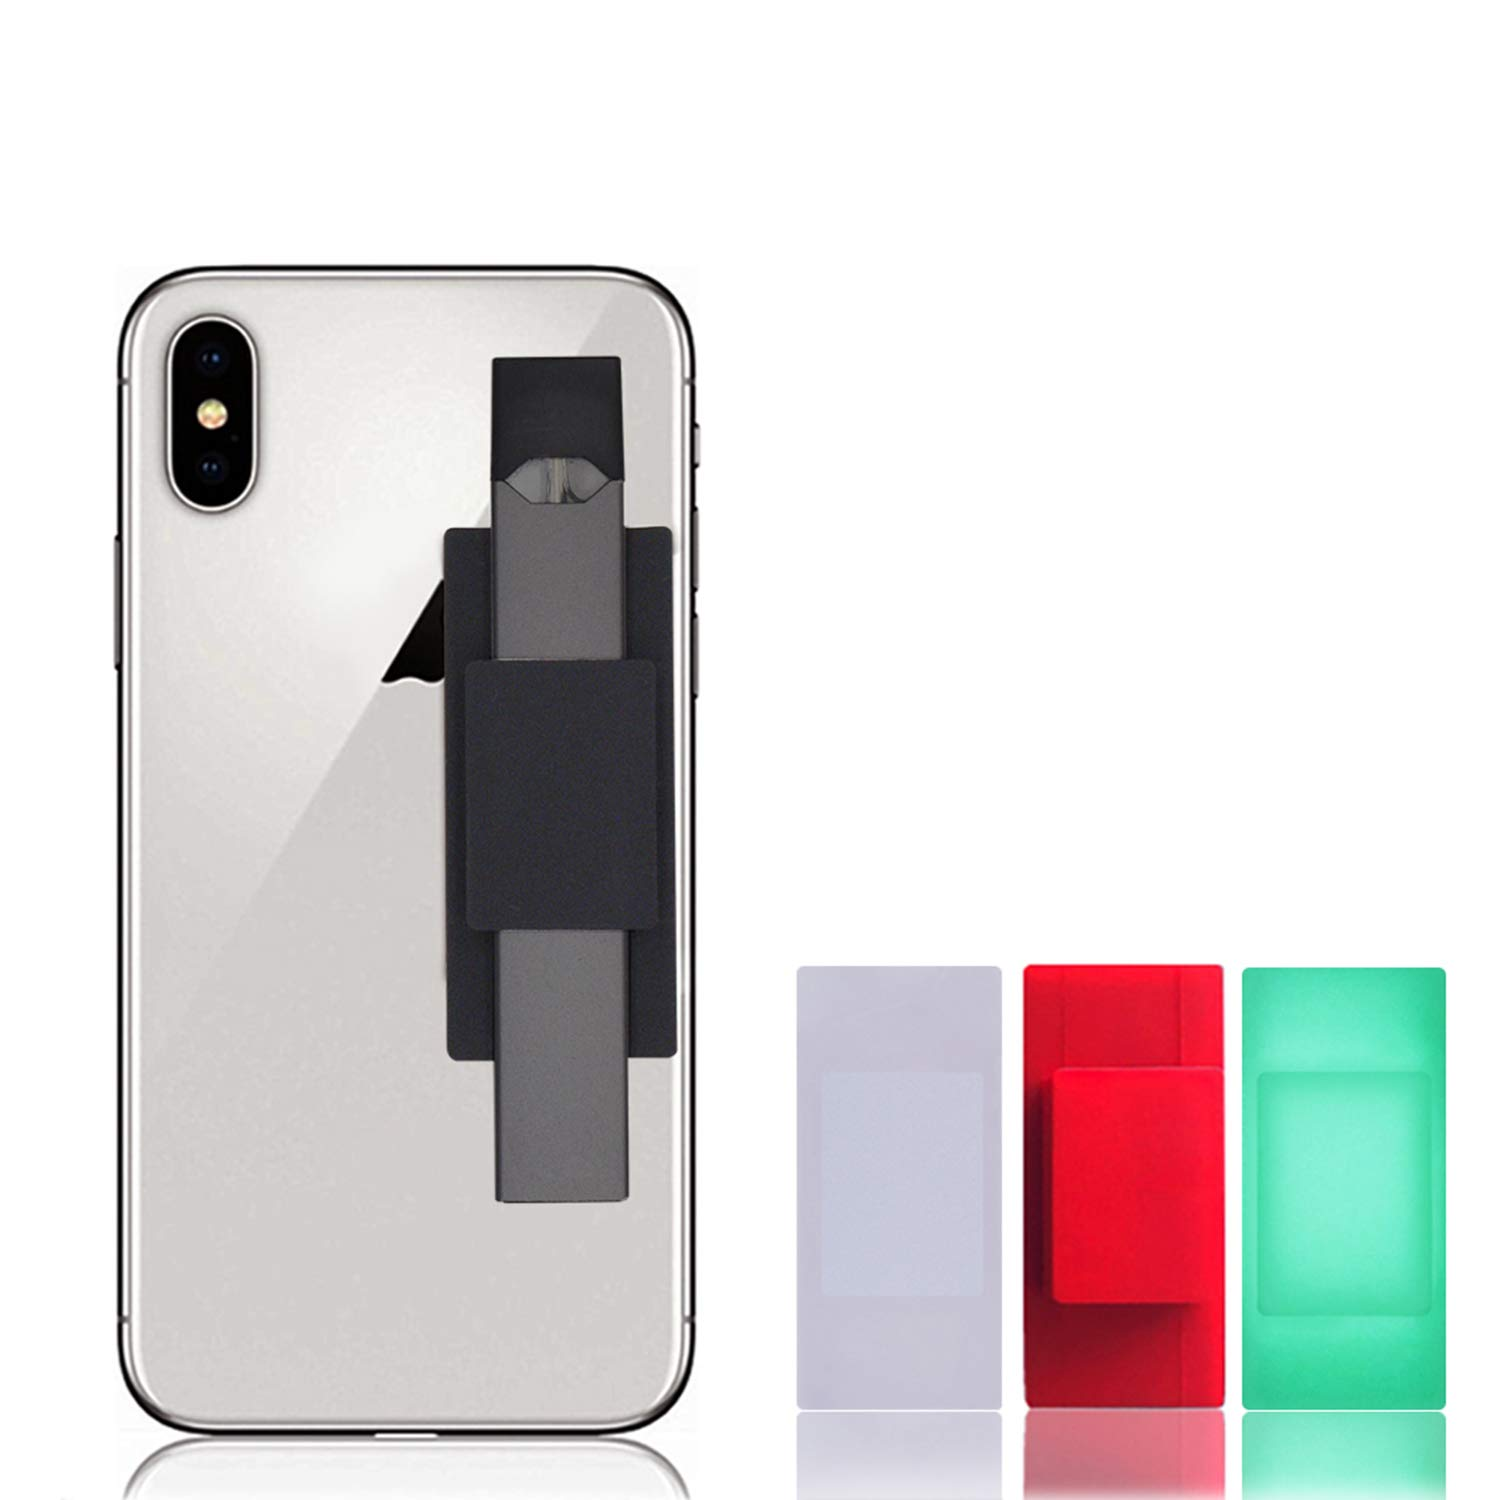 Samsung Galaxy 4351663733 Accessory Compatible with iPhone Car Dashboard Never Forget or Lose Your JUUL Black Case Only, No Device Included Tablets Swee Cell Phone Holder Compatible with JUUL